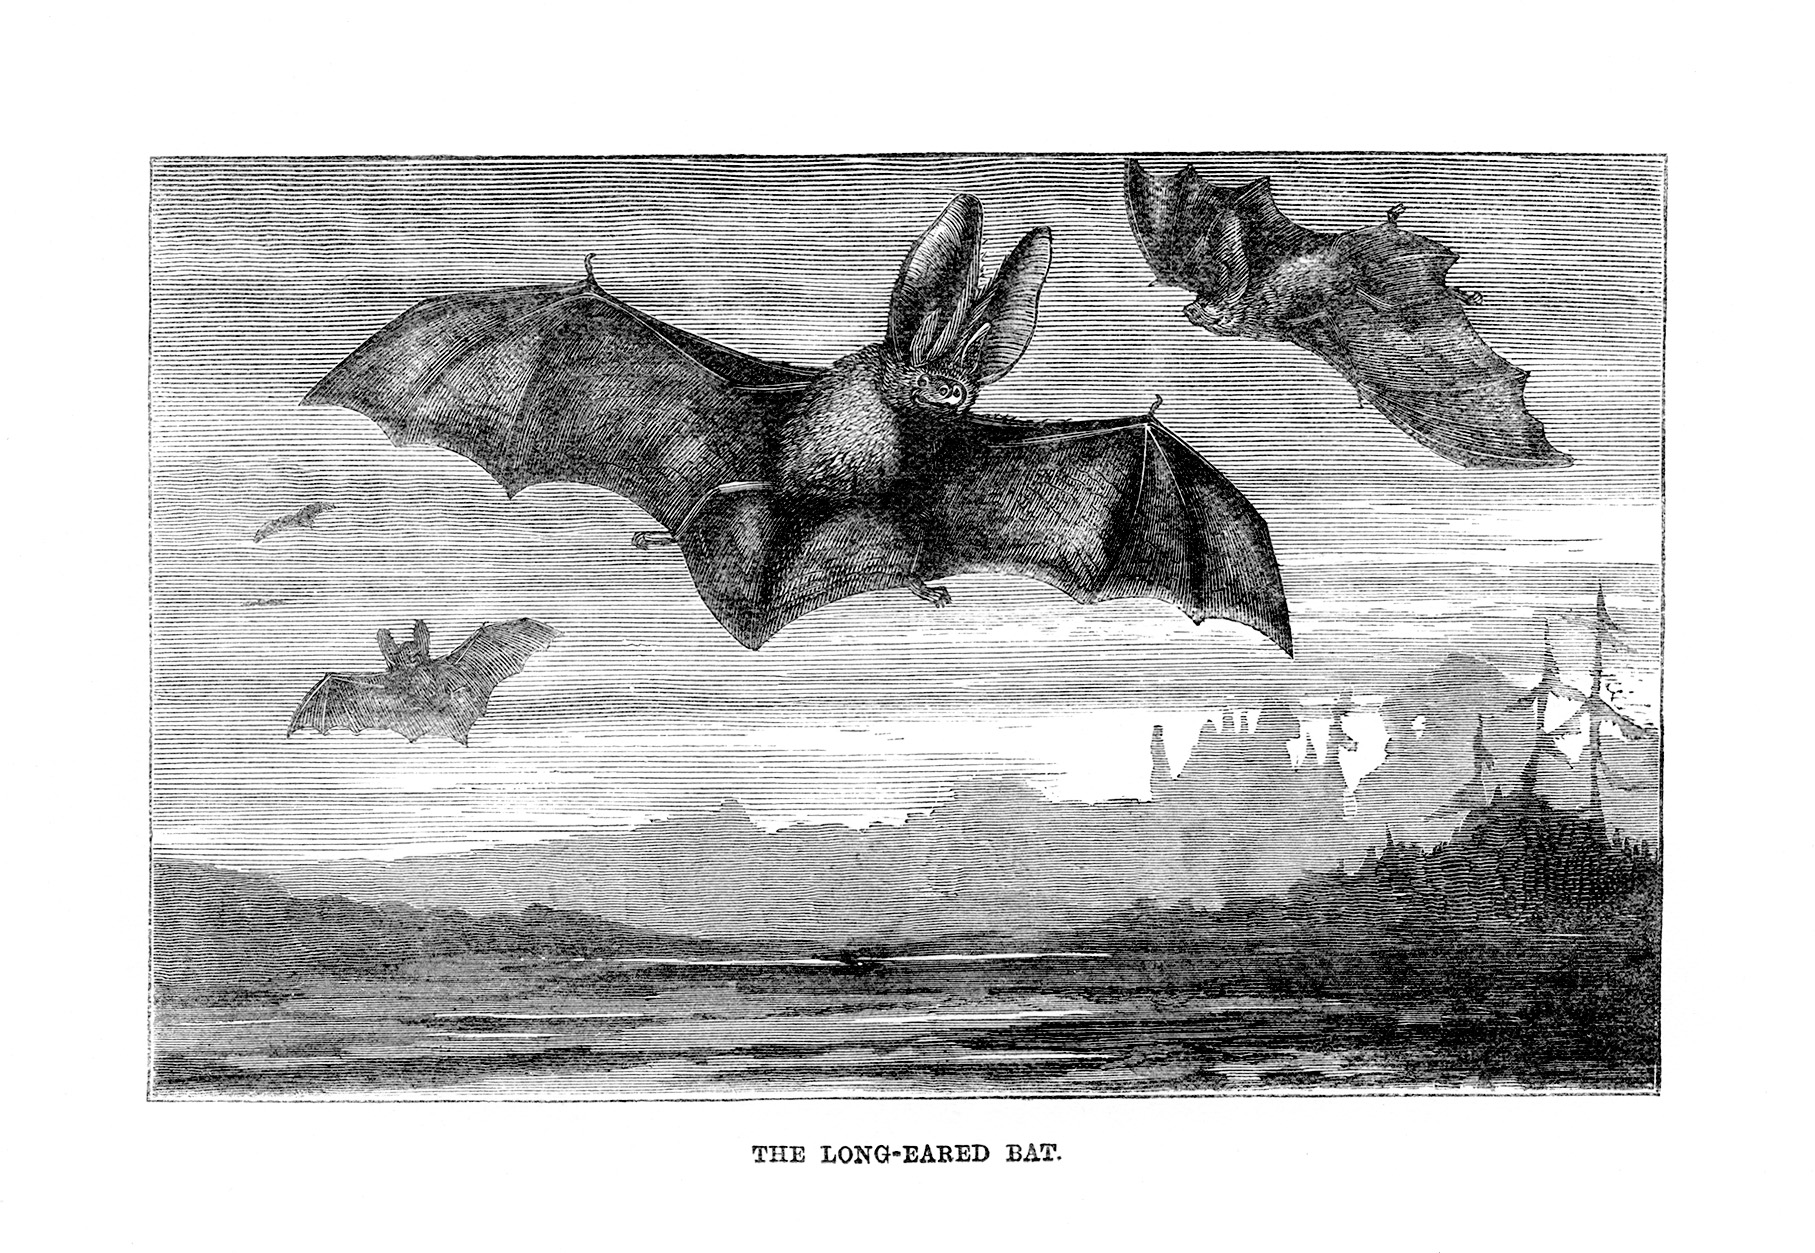 long eared bat vintage illustration